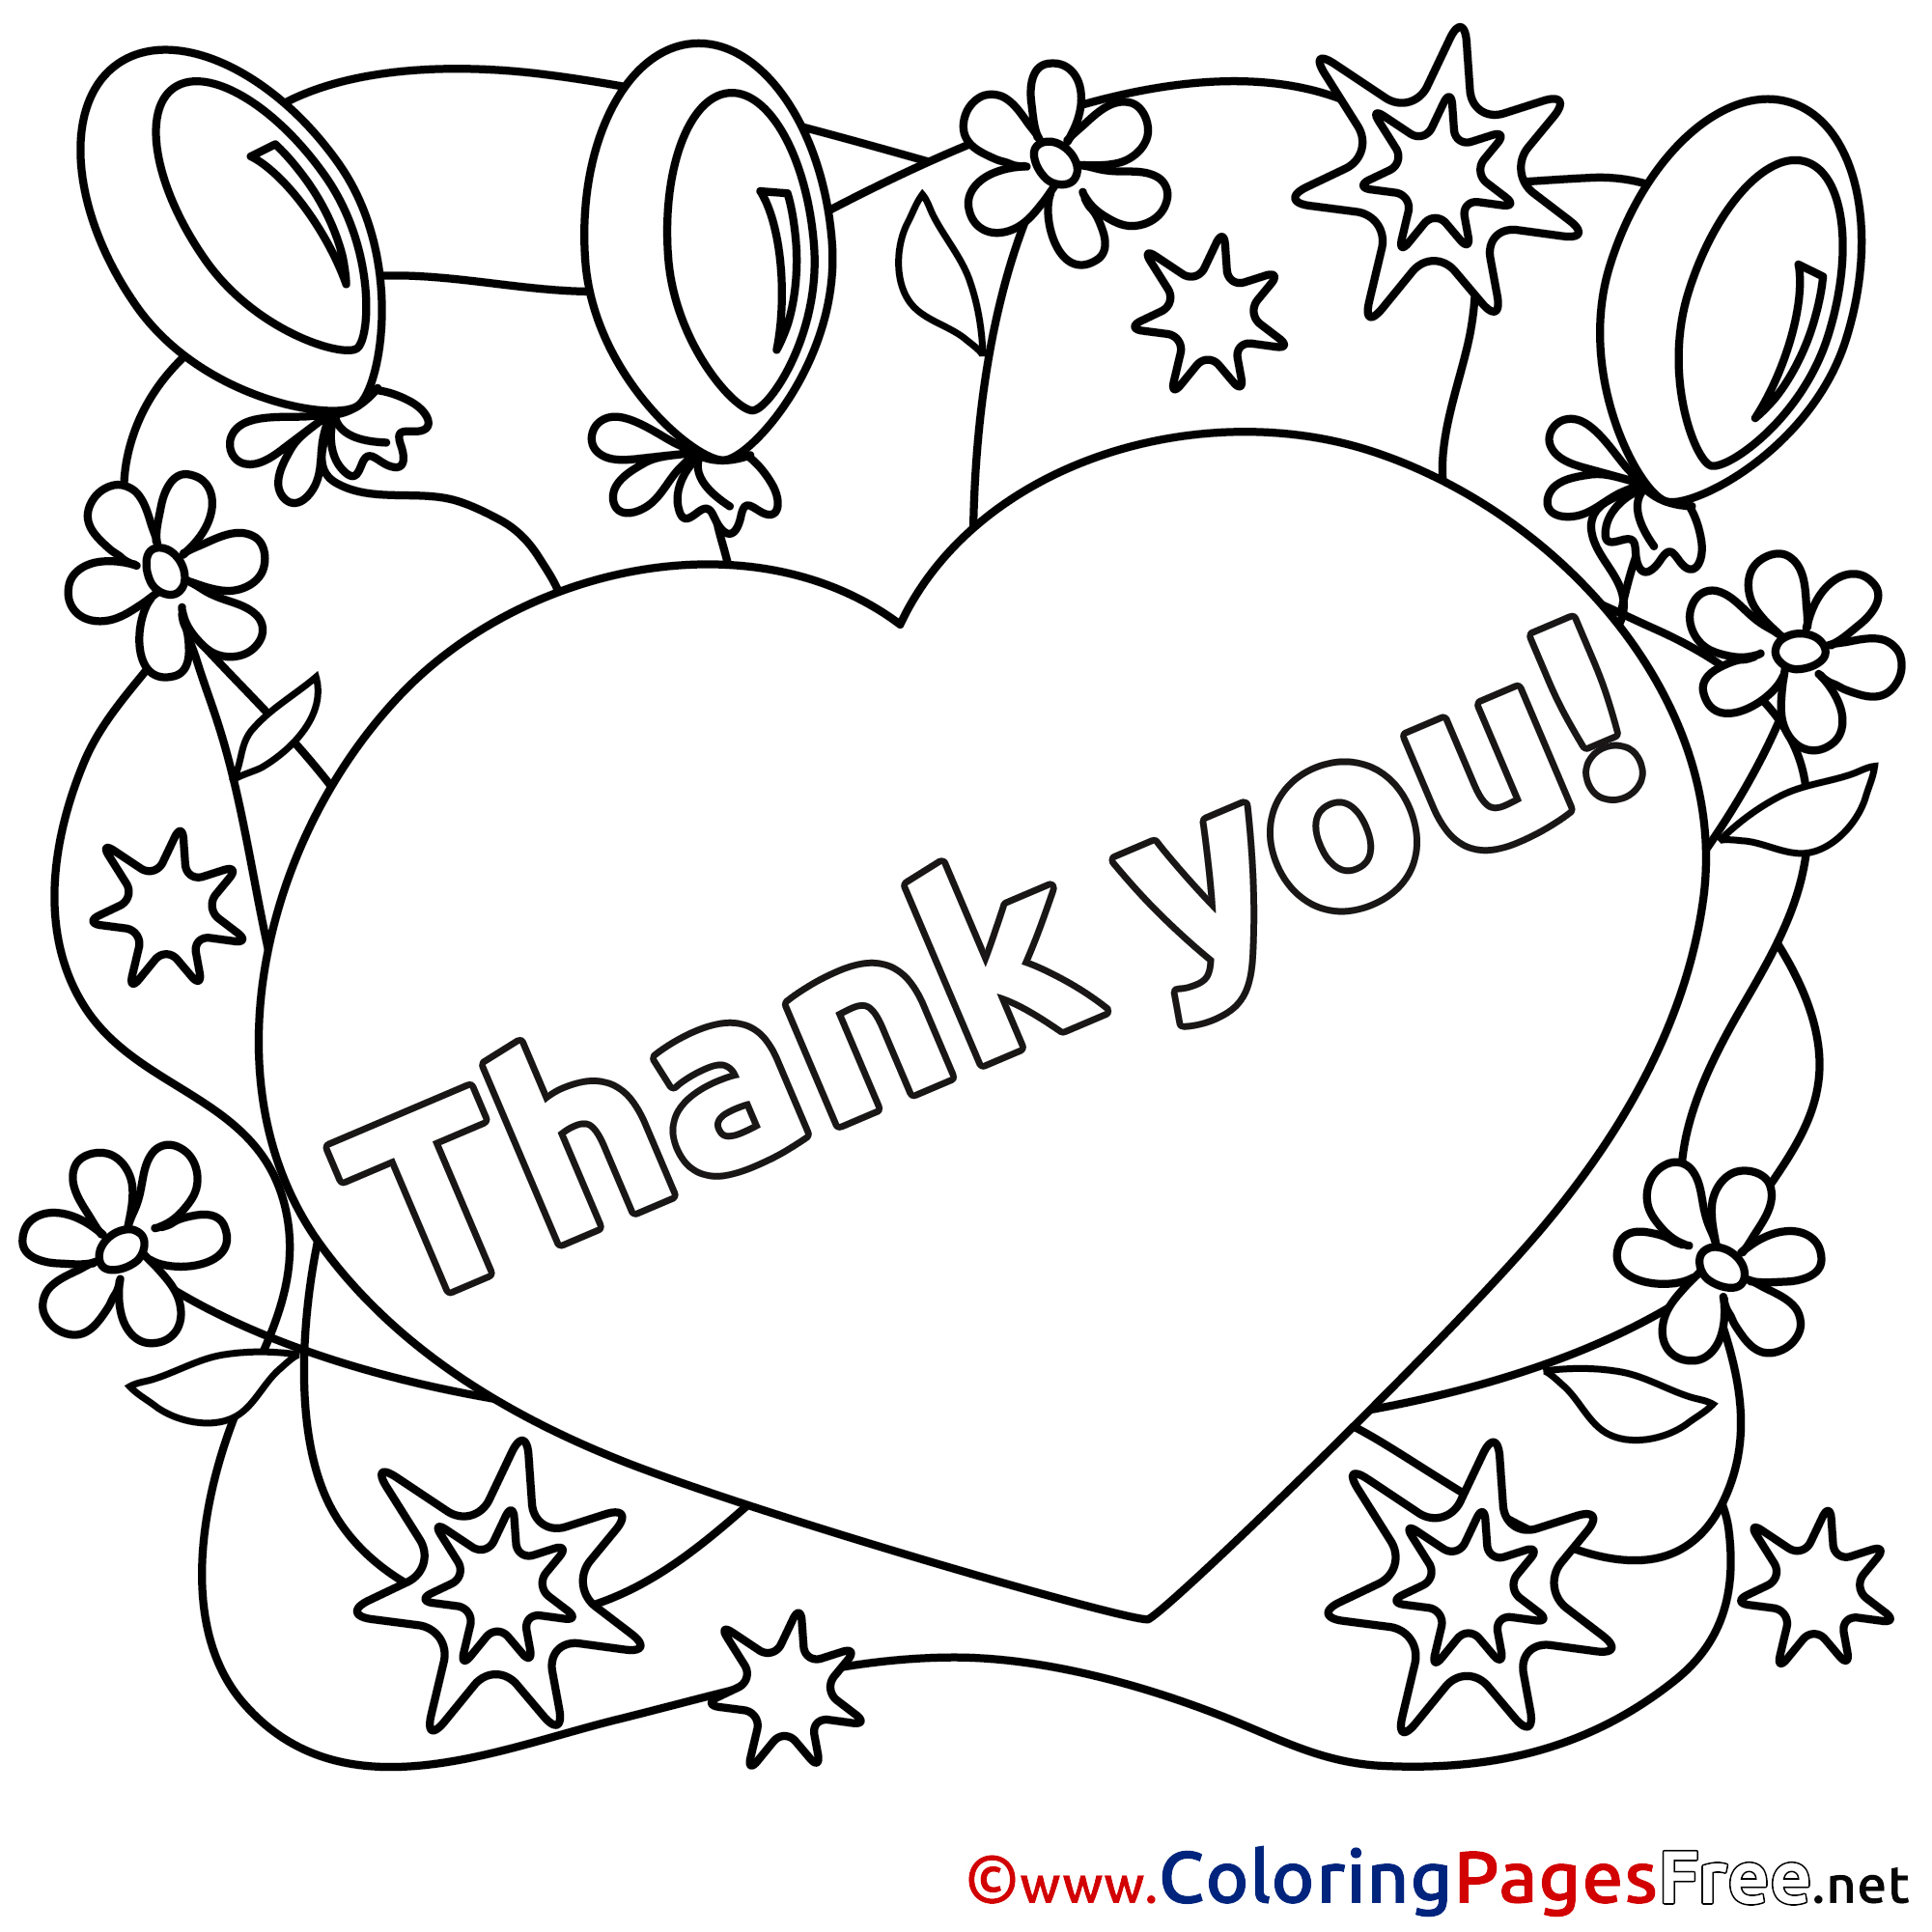 free thank you coloring pages heart balloons for kids thank you colouring page free you coloring pages thank